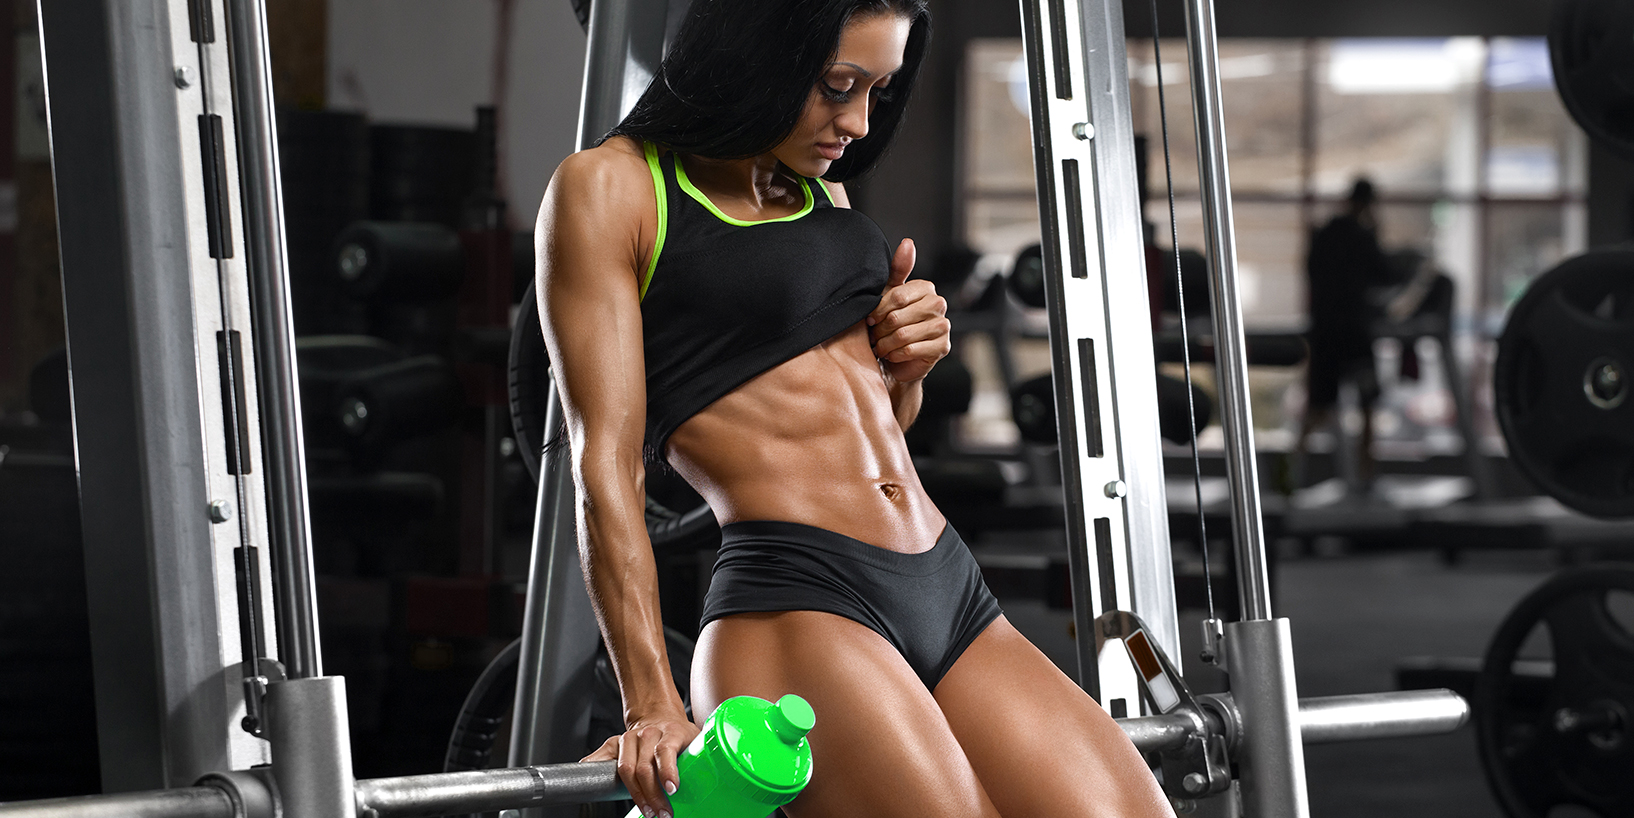 woman with really defined abs holding green shaker bottle